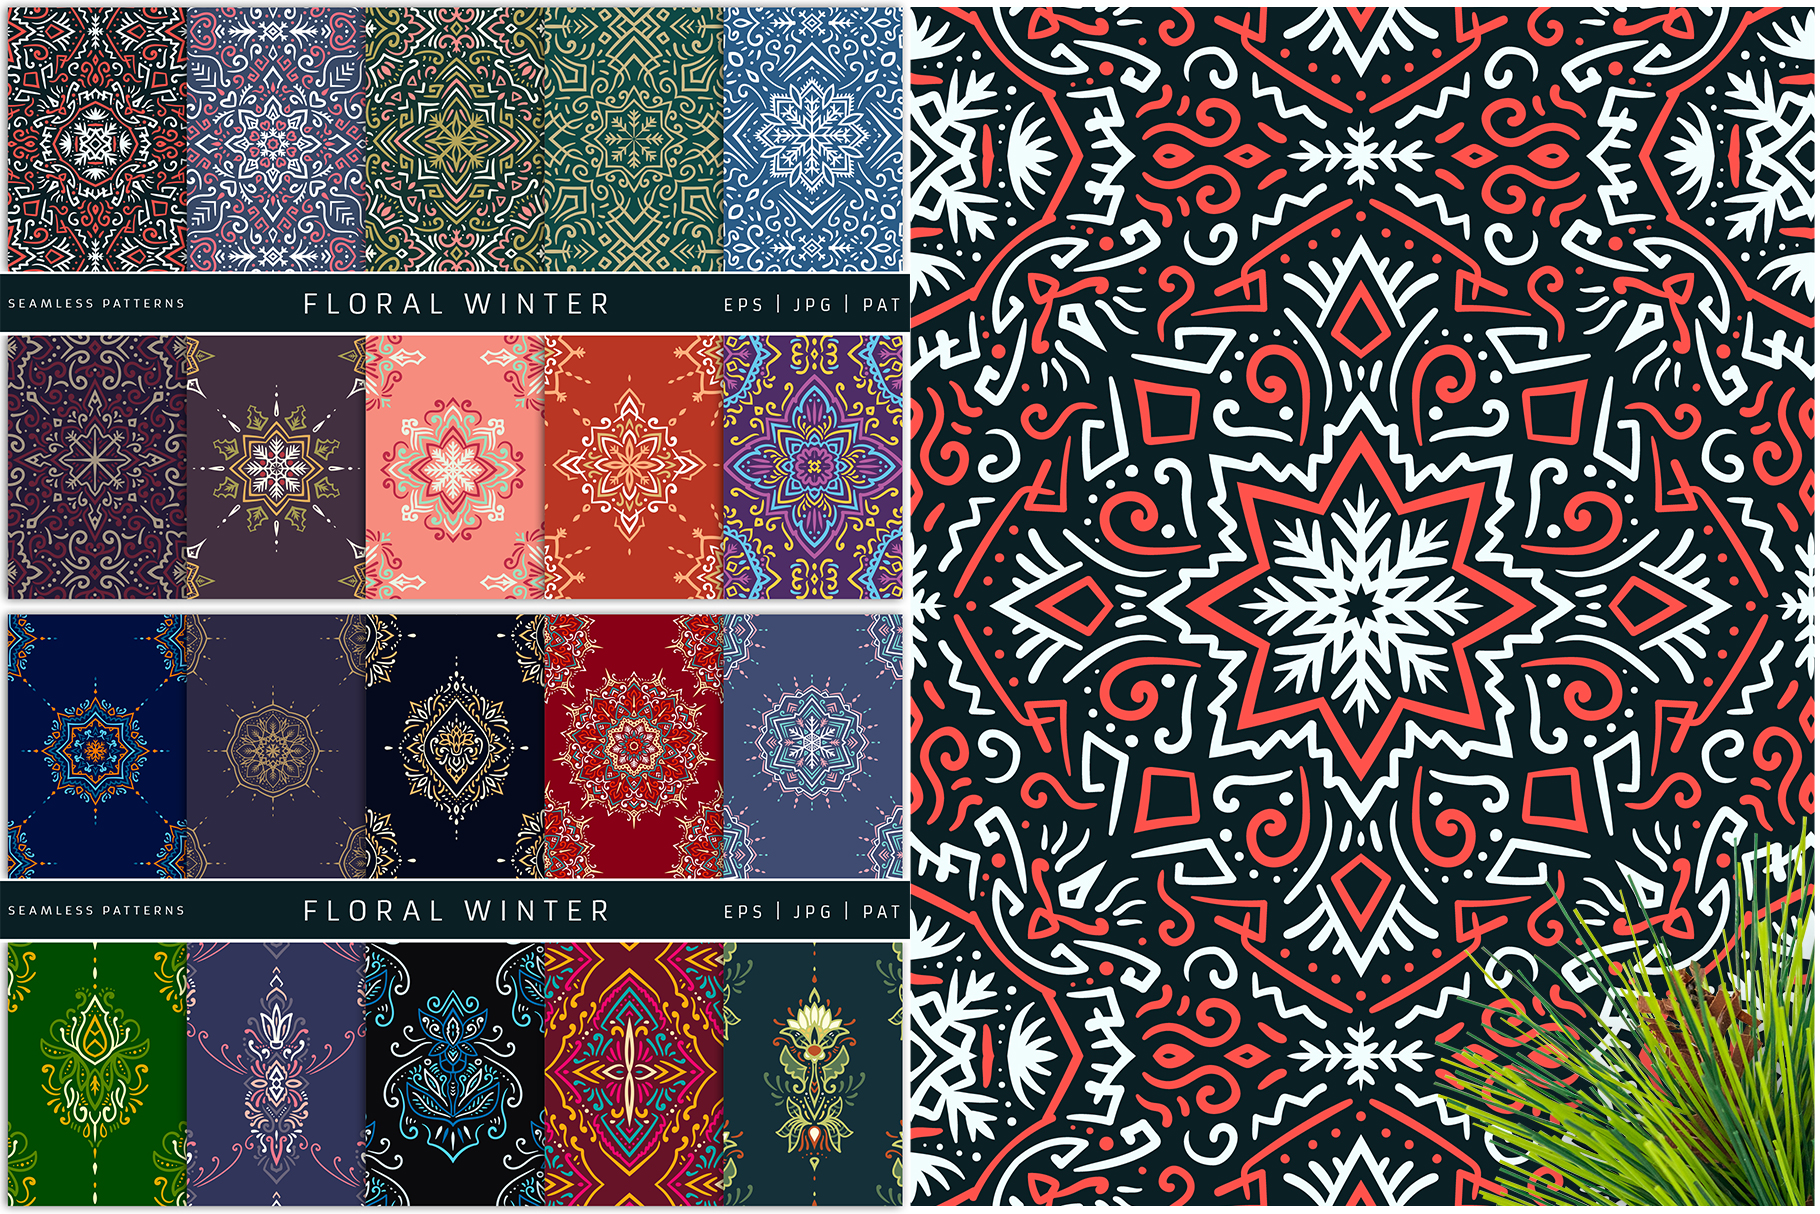 100 Seamless Patterns Vol.4 Christmas example image 4